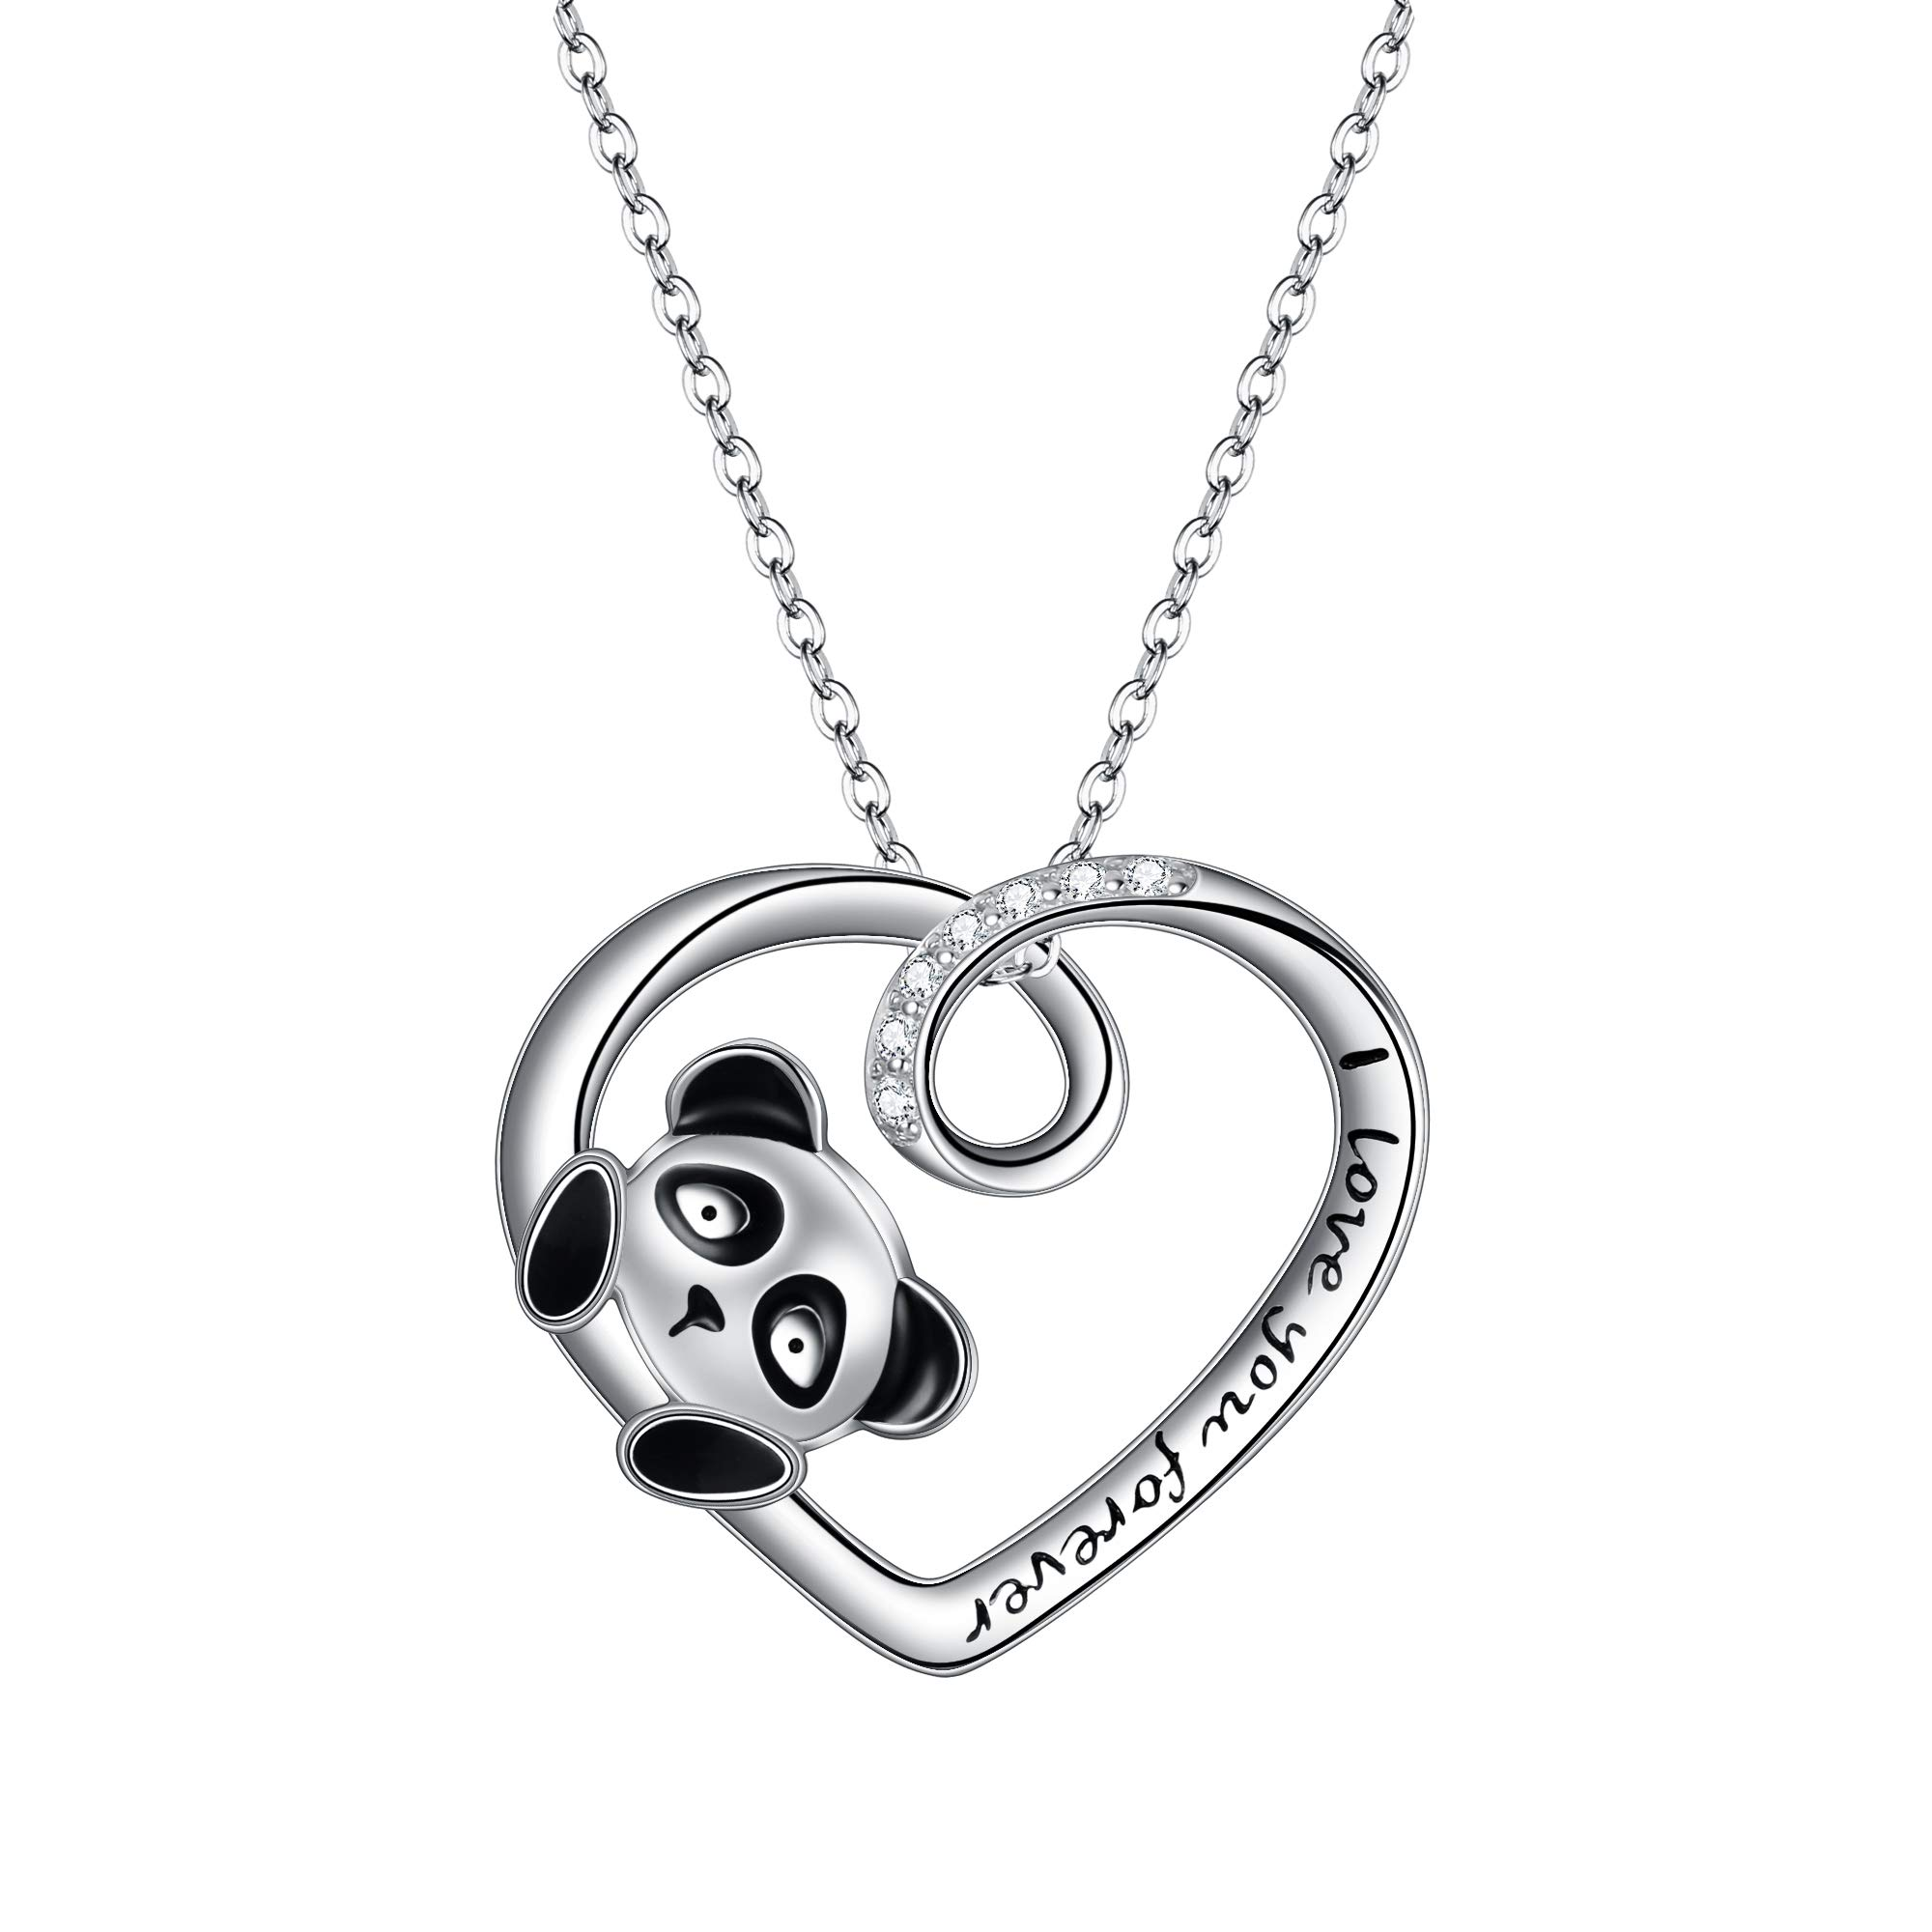 FANZE Panda Necklace 925 Sterling Silver CZ Forever Love Cute Animal Heart Pendant Necklace with Words Engraved Birthday Gift for Women